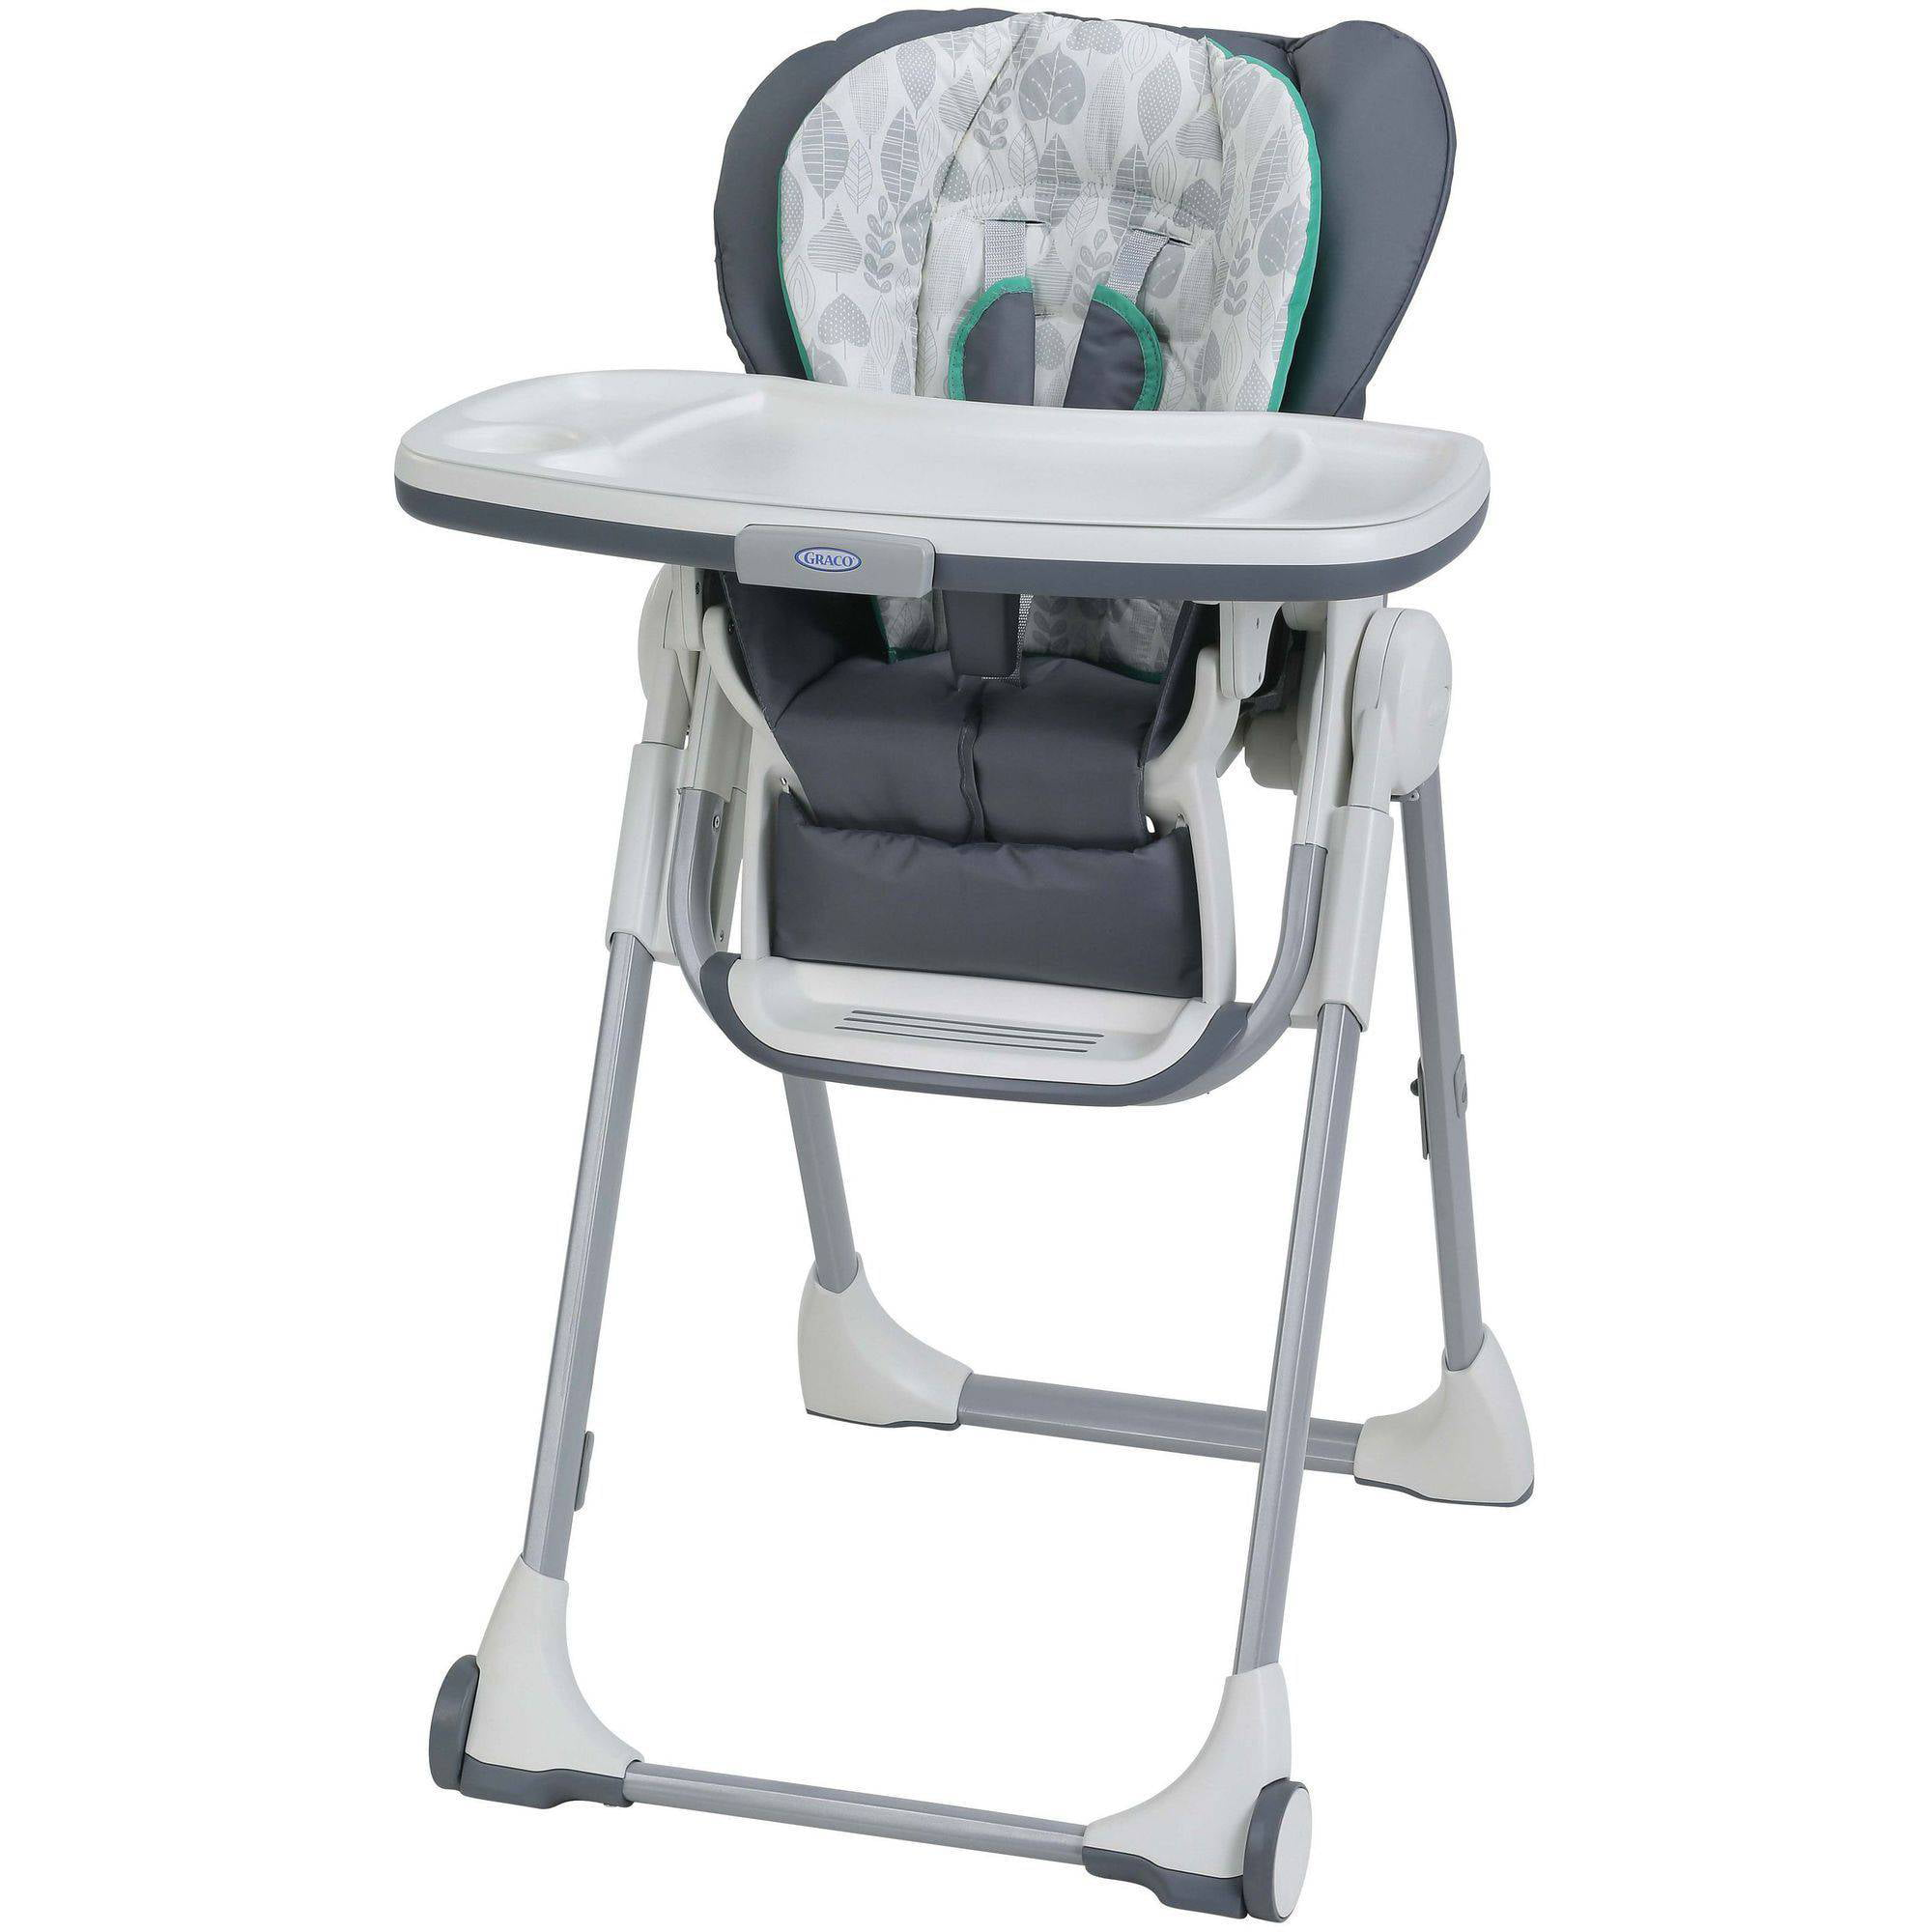 Beau Graco SwiftFold High Chair, Briar   Walmart.com